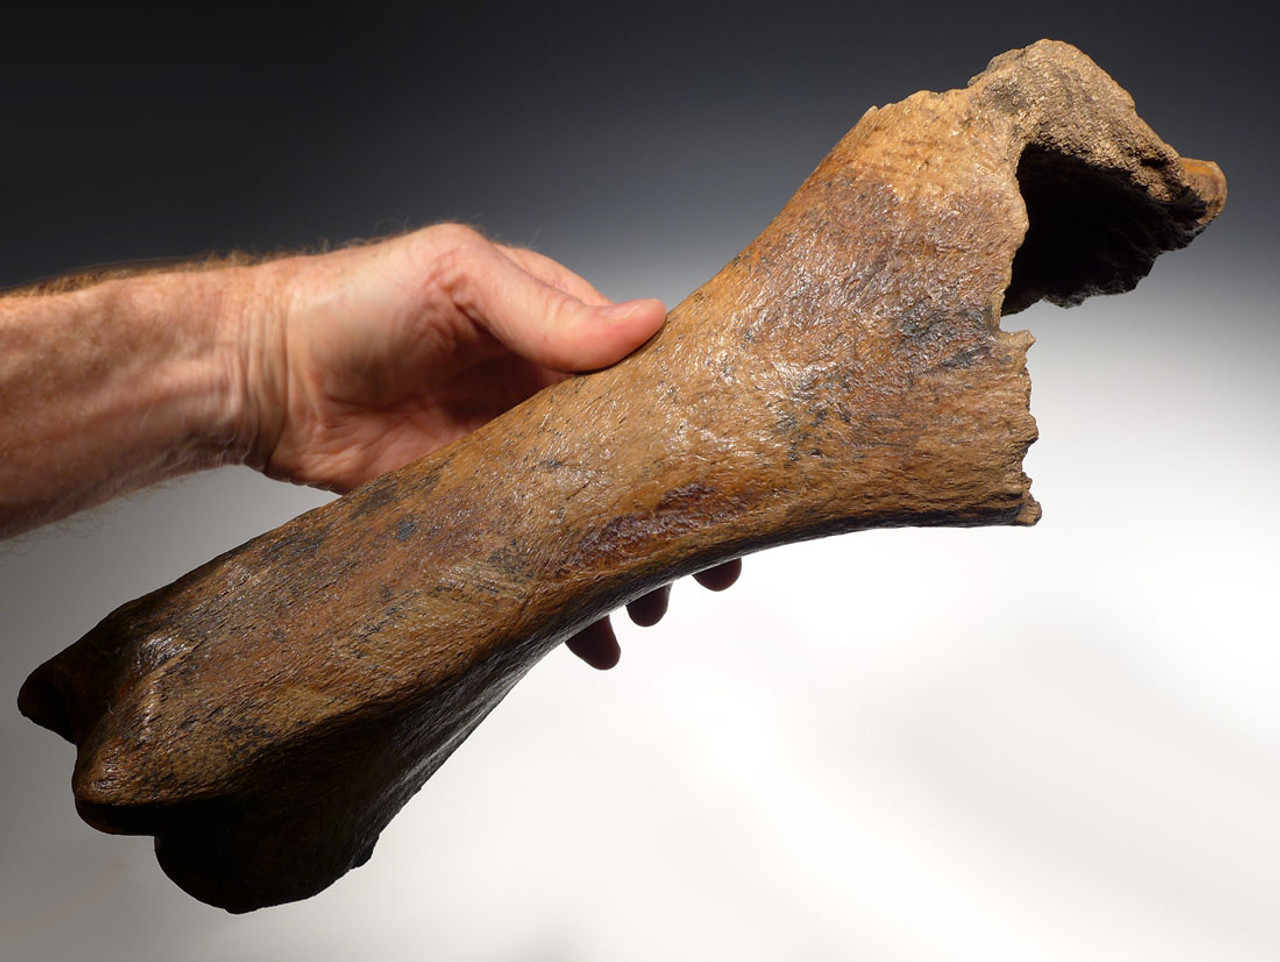 RARE PREDATION FOSSIL WOOLLY RHINOCEROS RADIUS BONE WITH DRAMATIC CAVE HYENA BITE MARKS *LMX109